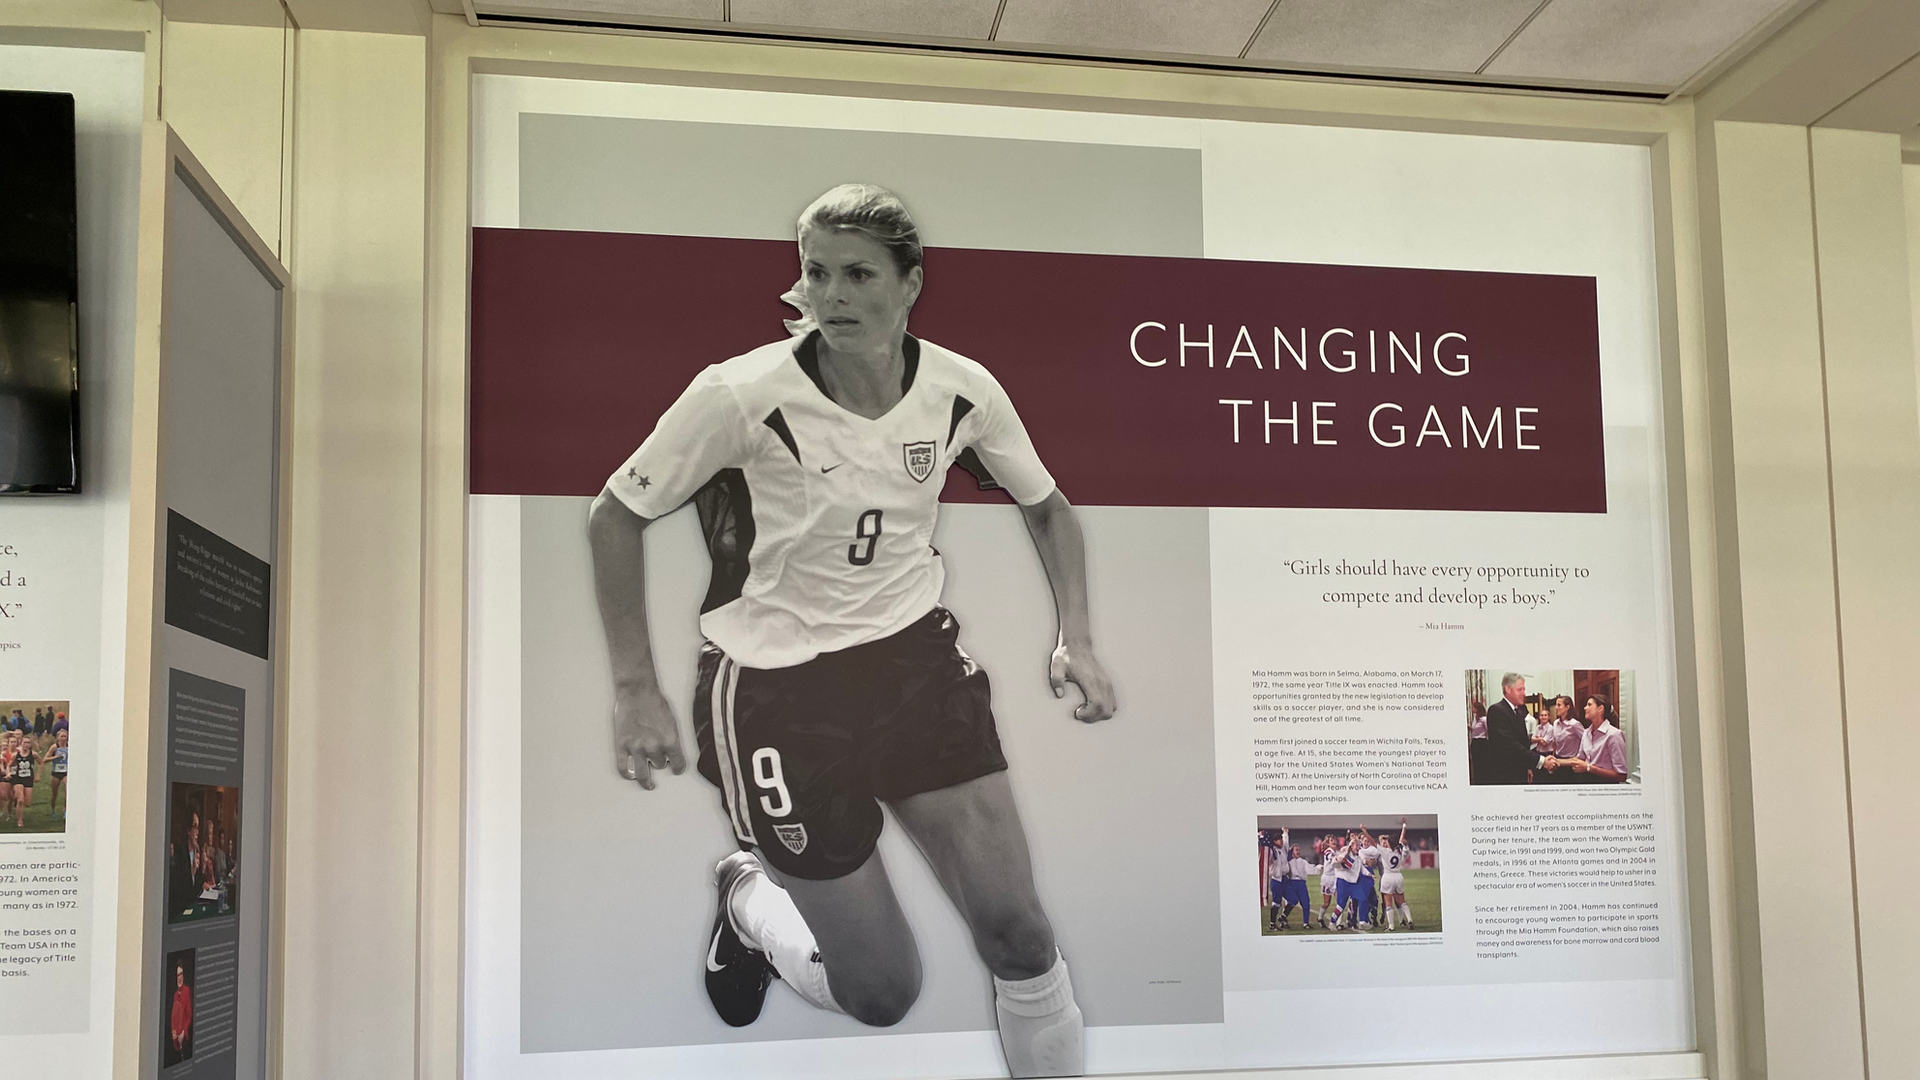 title ix exhibit graphic featuring mia hamm in the richard nixon presidential library